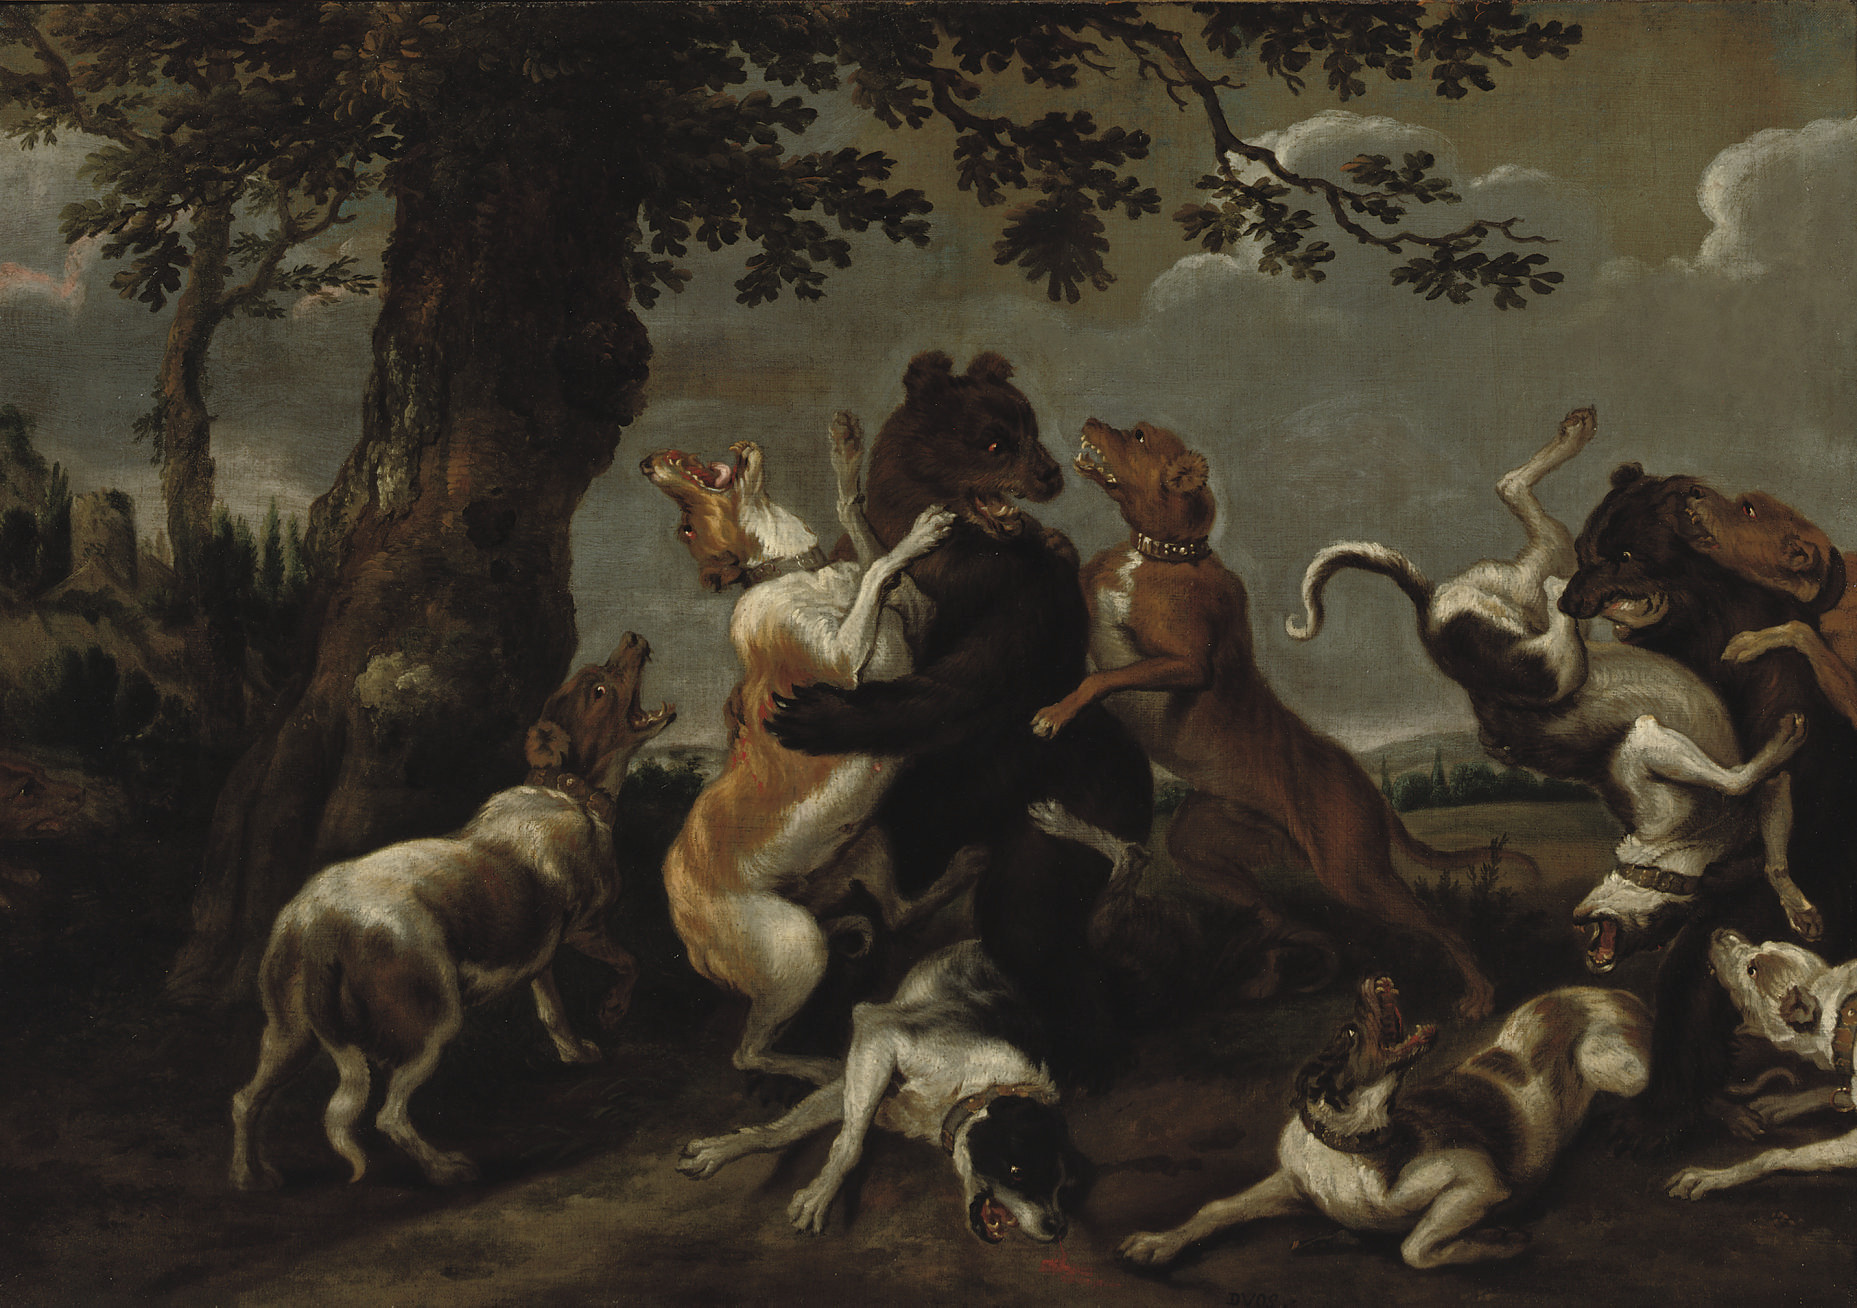 Follower of Frans Snyders